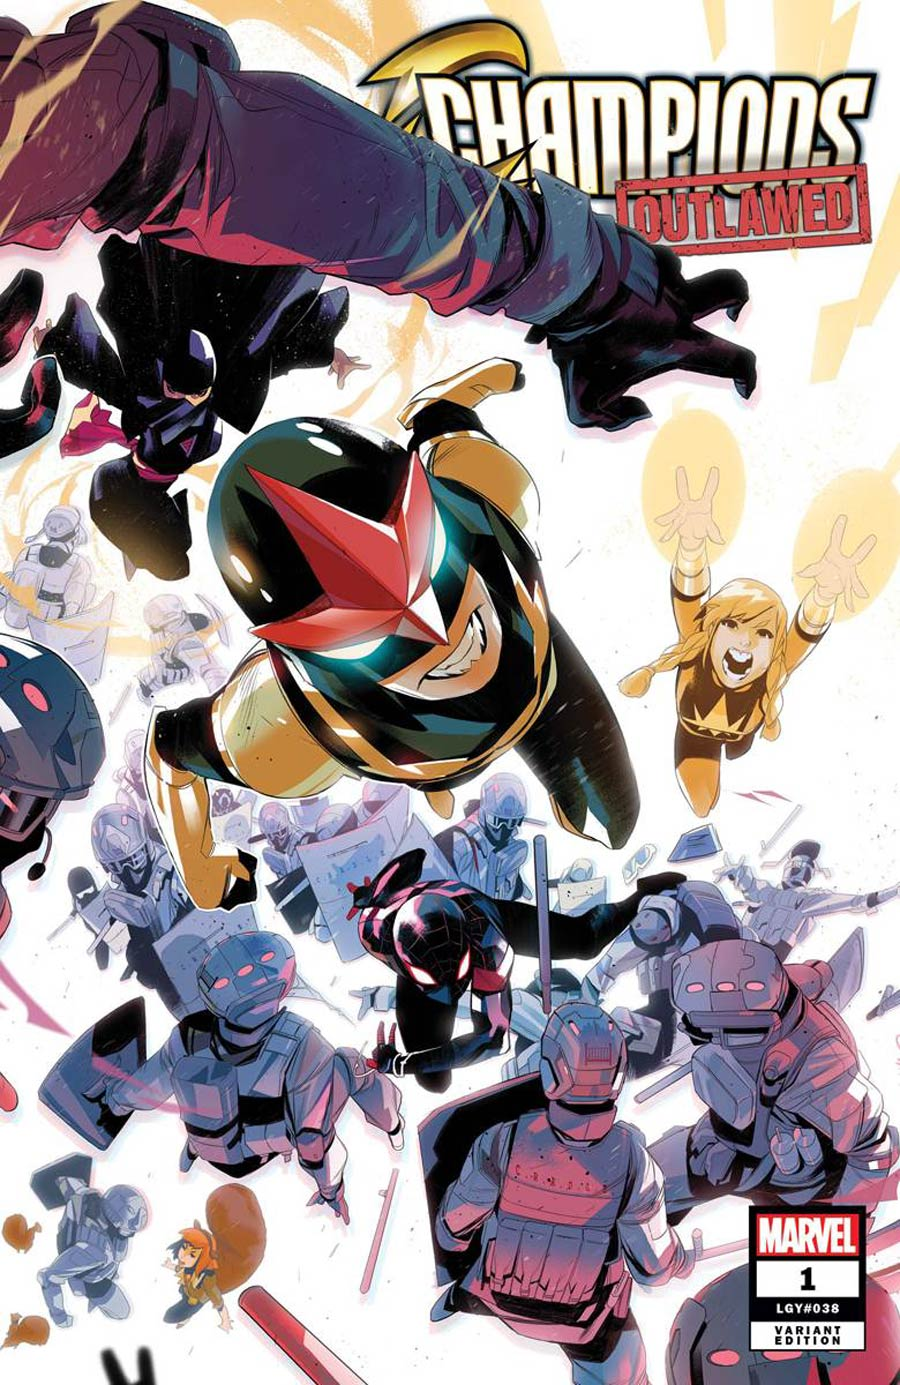 Champions (Marvel) Vol 4 #1 Cover C Variant Simone Di Meo Cover (Outlawed Tie-In)